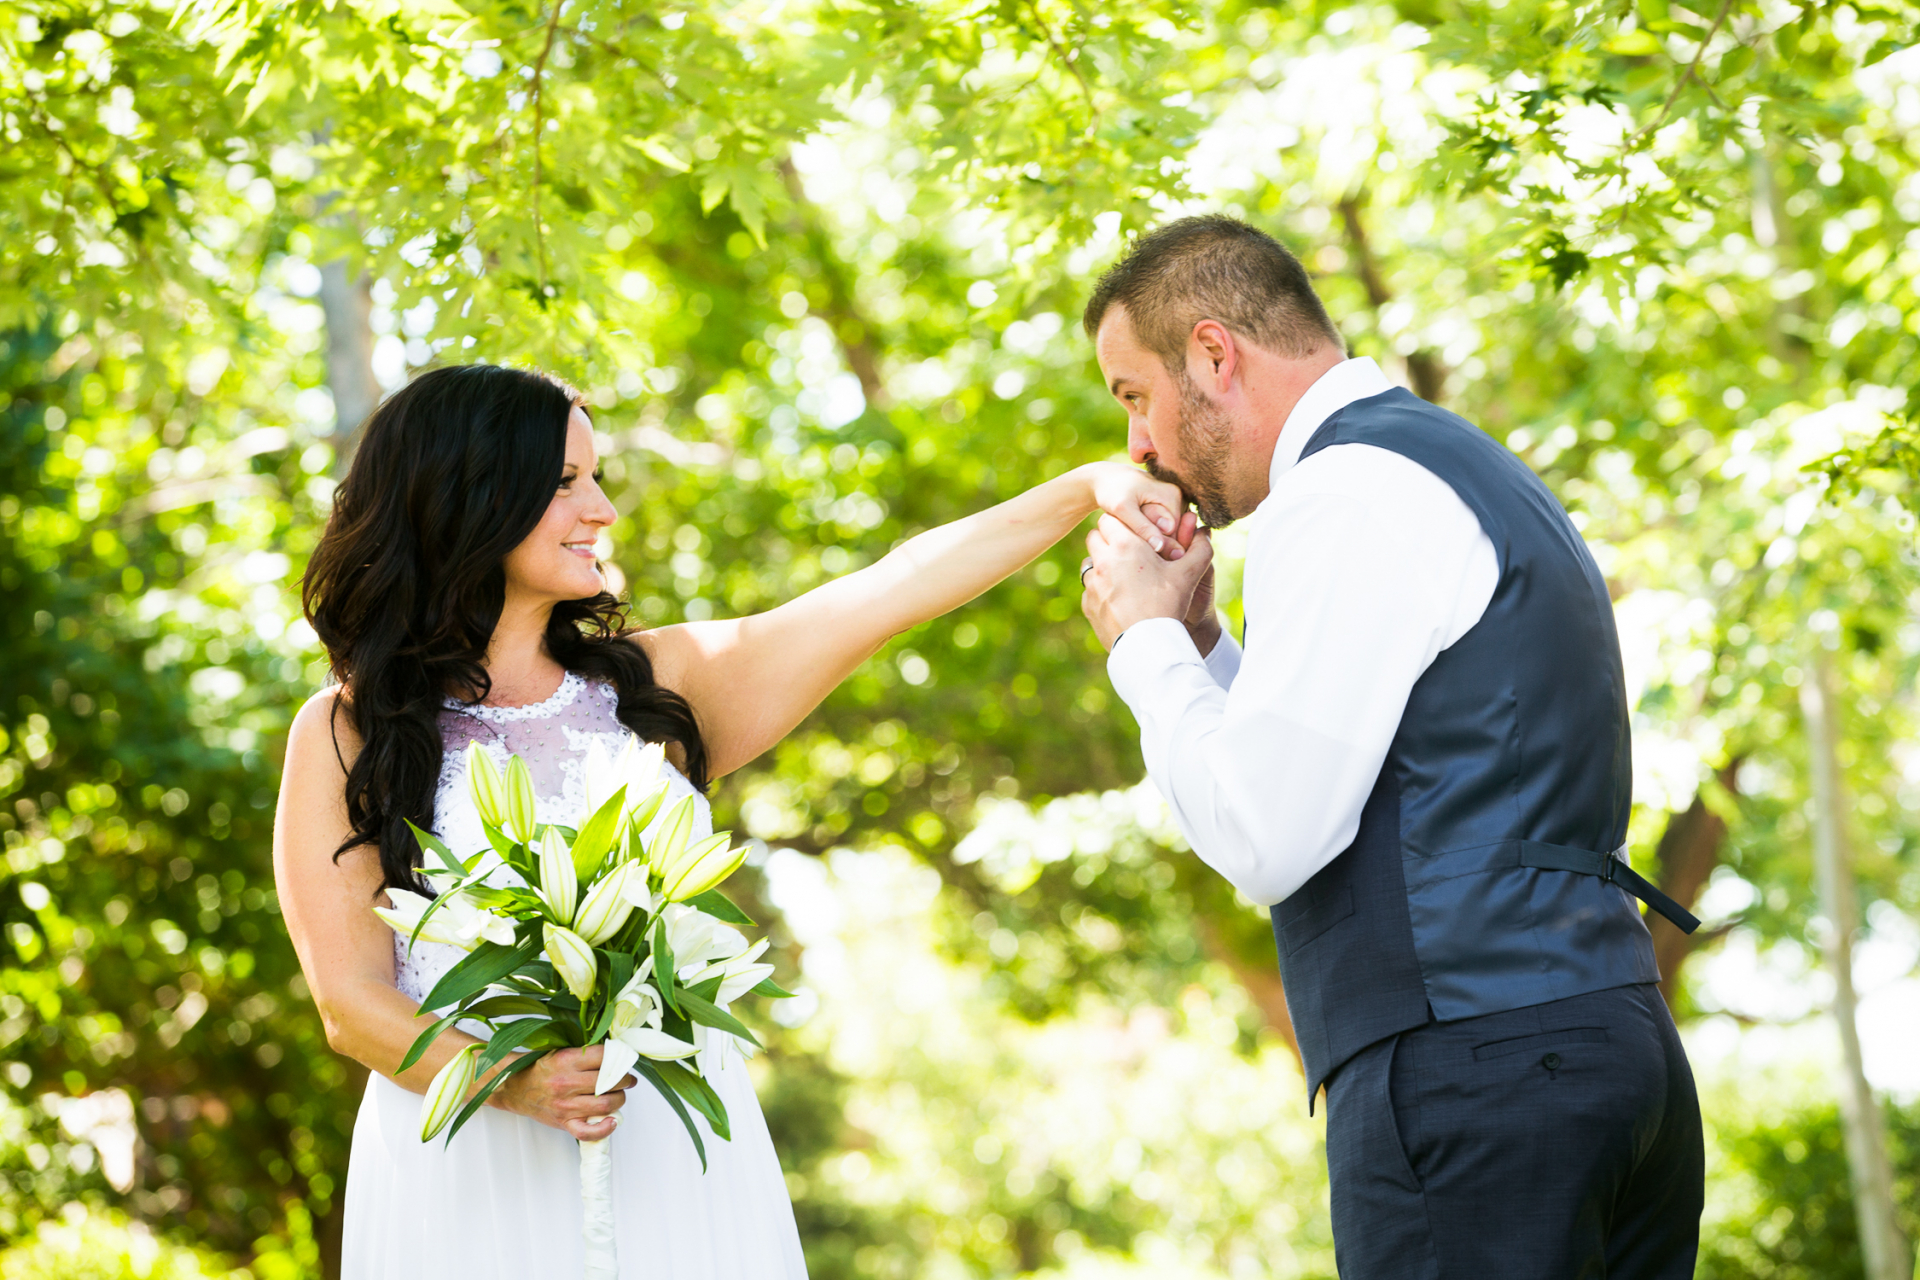 CO Wedding Couple Portrait - Elopement Images | the groom kisses his new wife's hand in a shady spot in their backyard